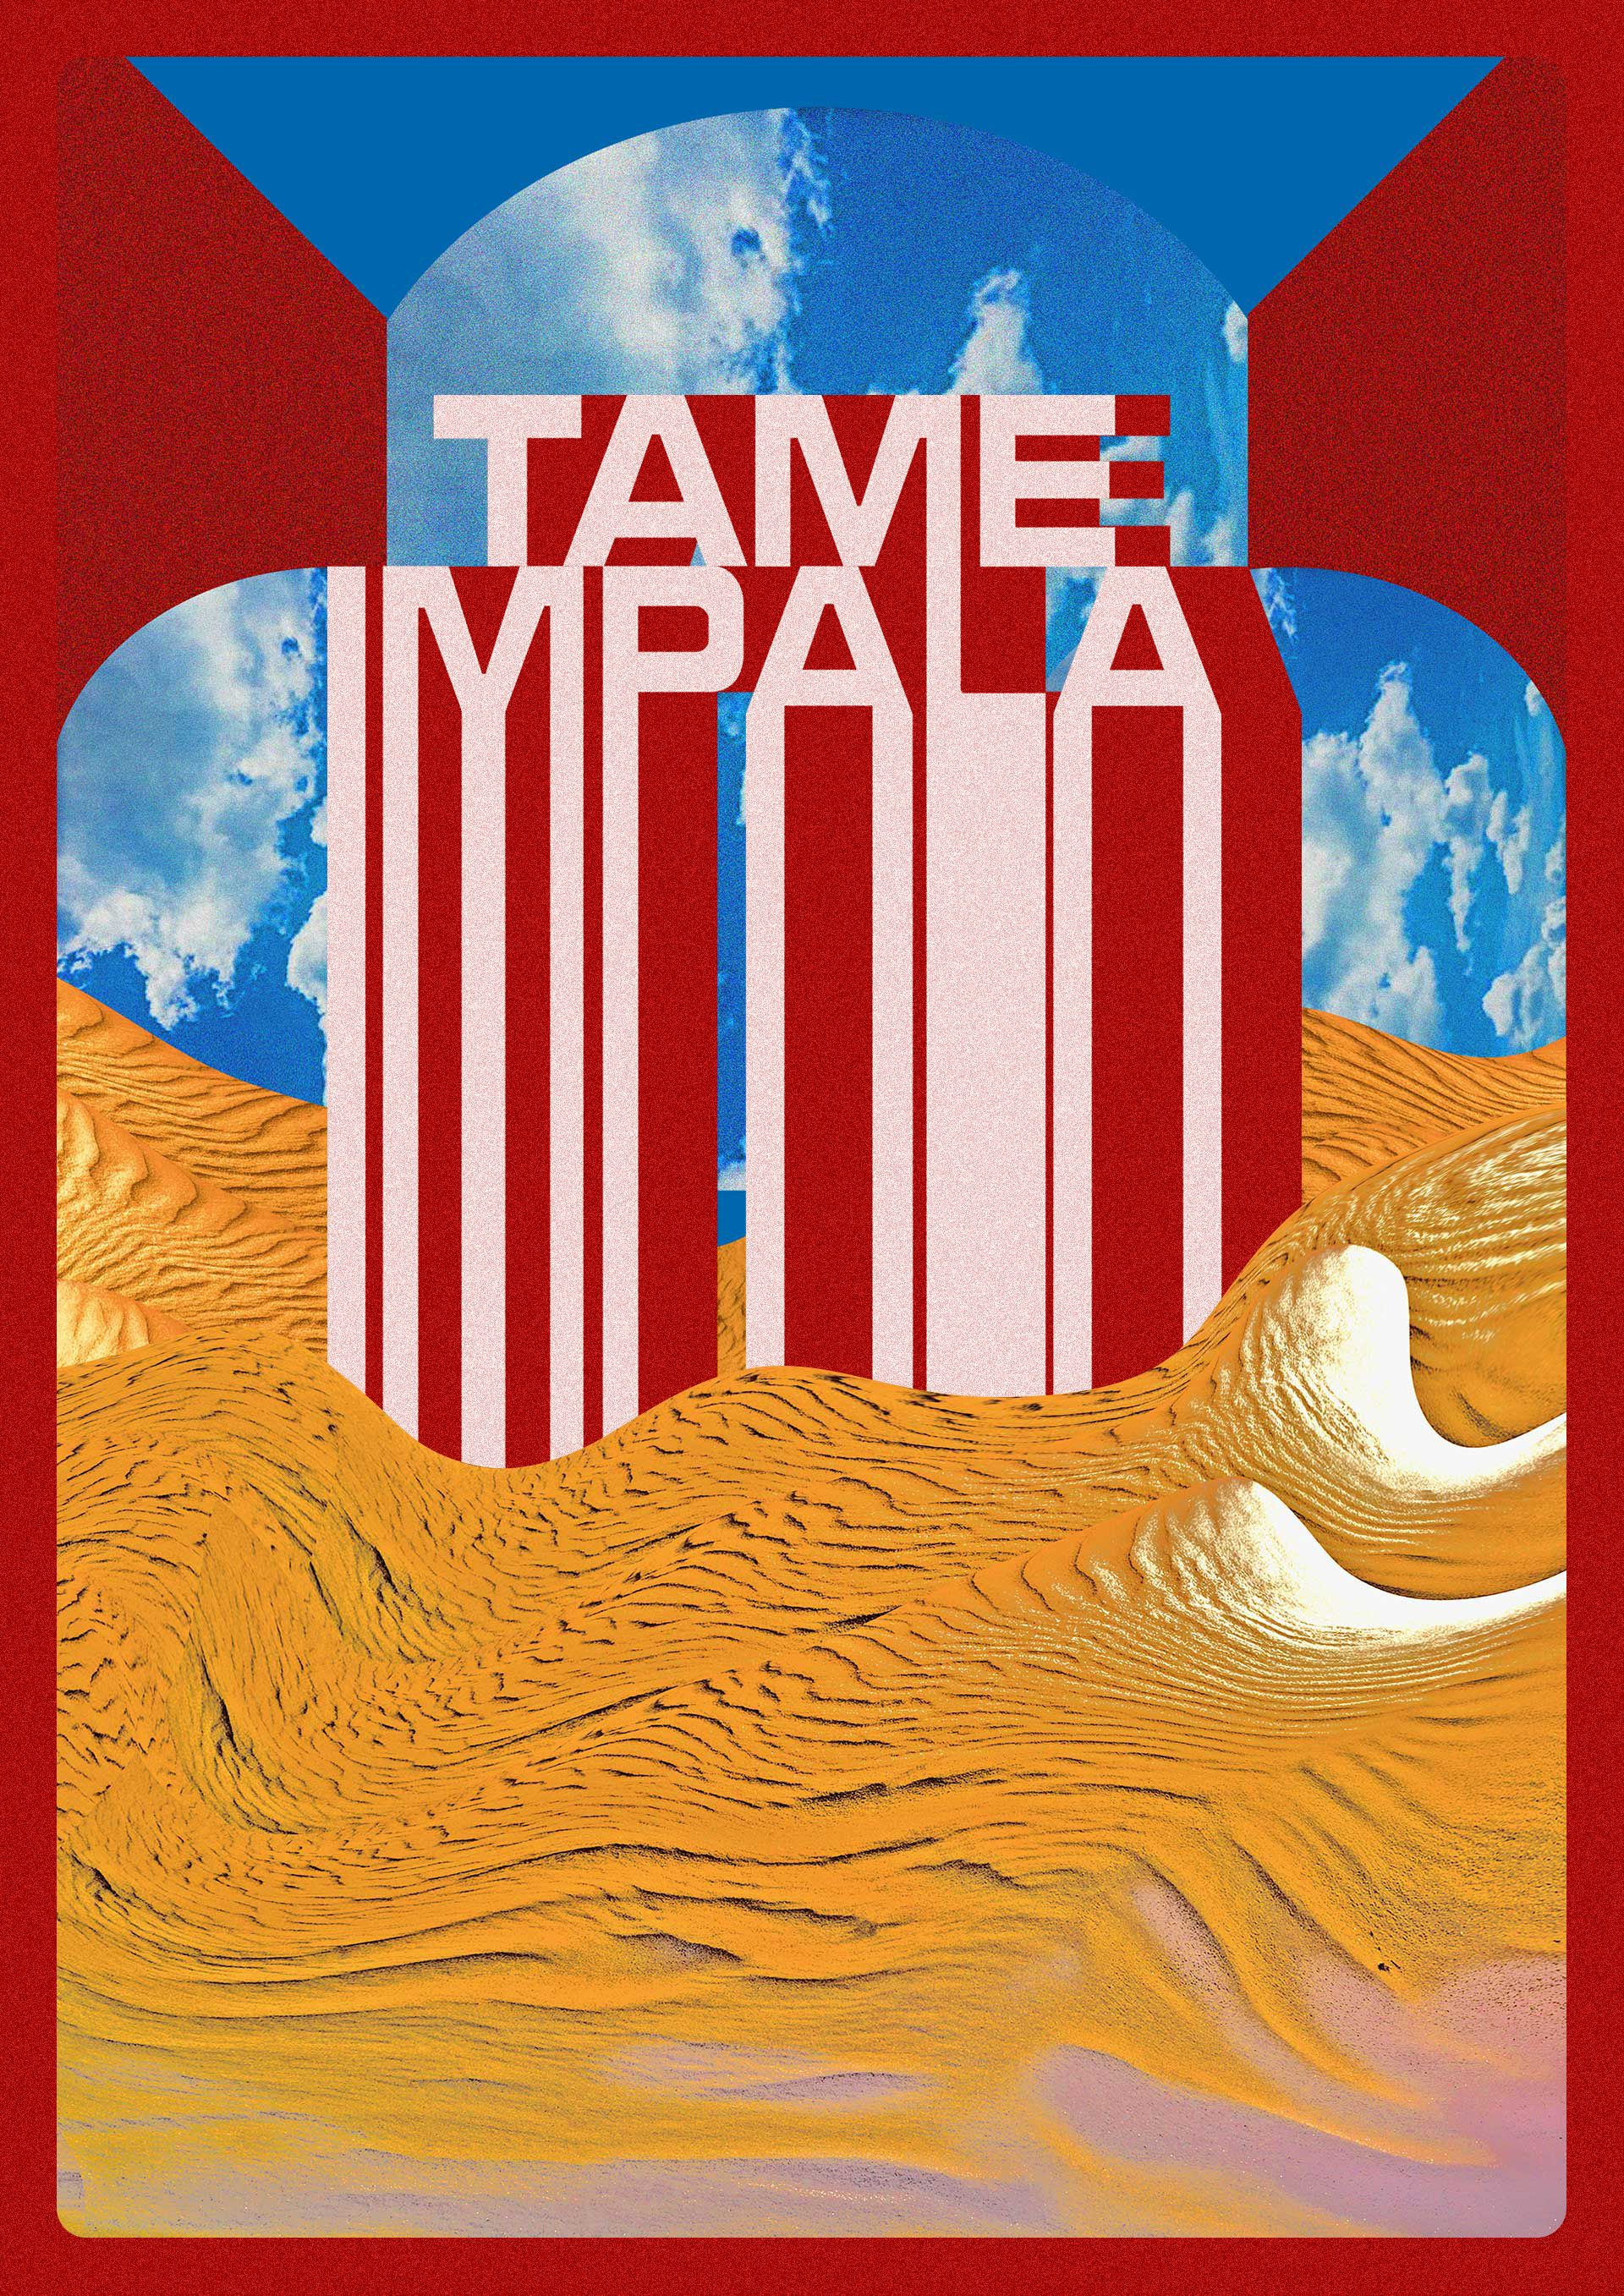 Concert Poster Design By Adam Hager On Tame Impala In 2020 Music Album Art Cool Album Covers